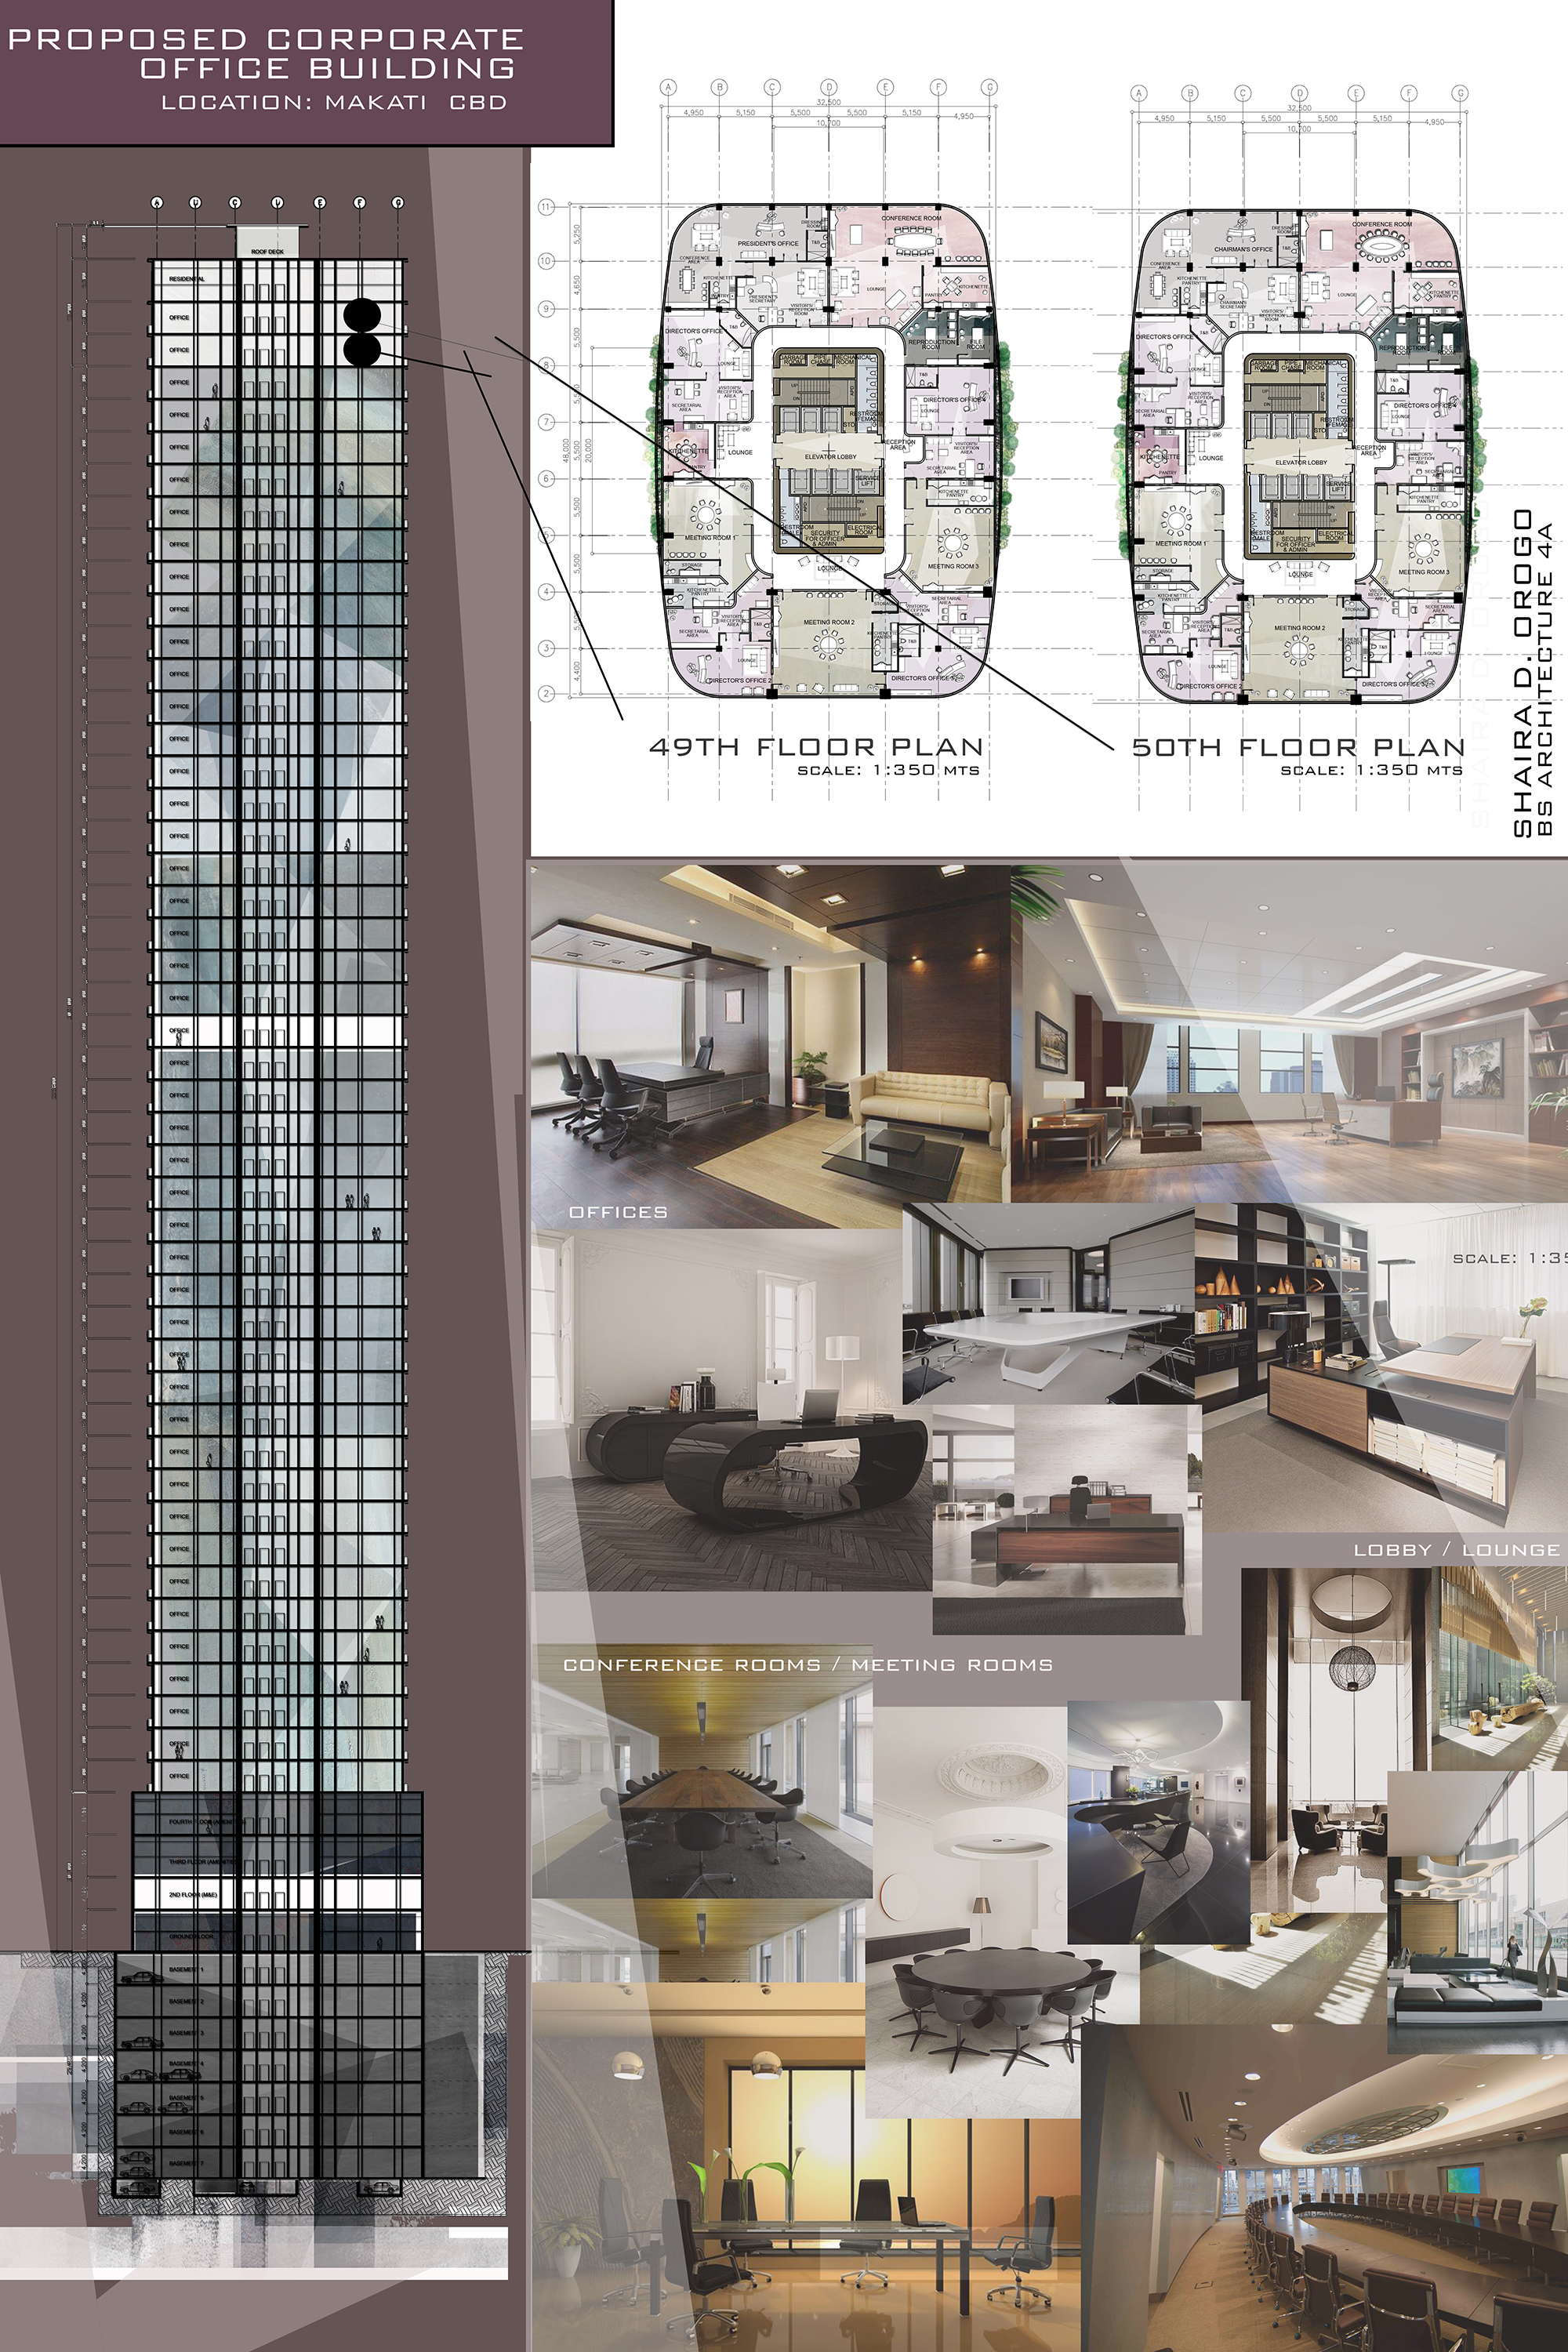 Design 8 proposed corporate office building high rise for House structure design